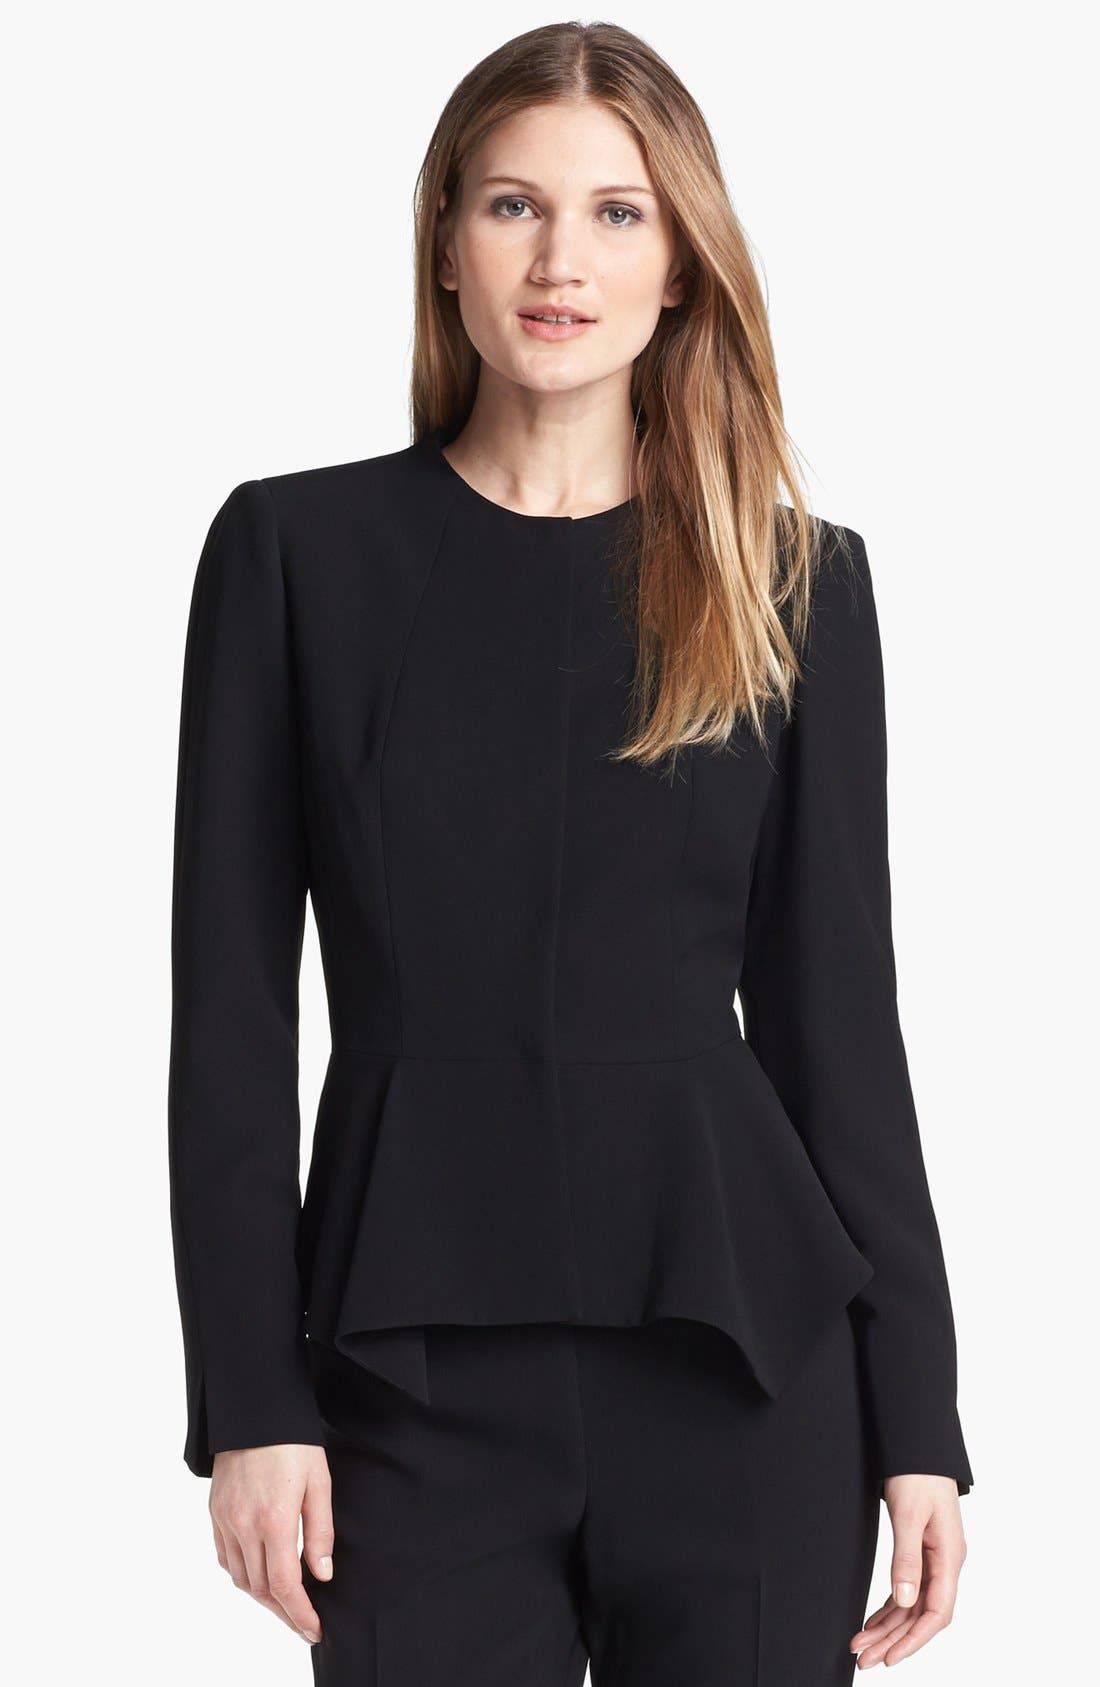 Alternate Image 1 Selected - Lafayette 148 New York 'Lissette - Finesse Crepe' Jacket